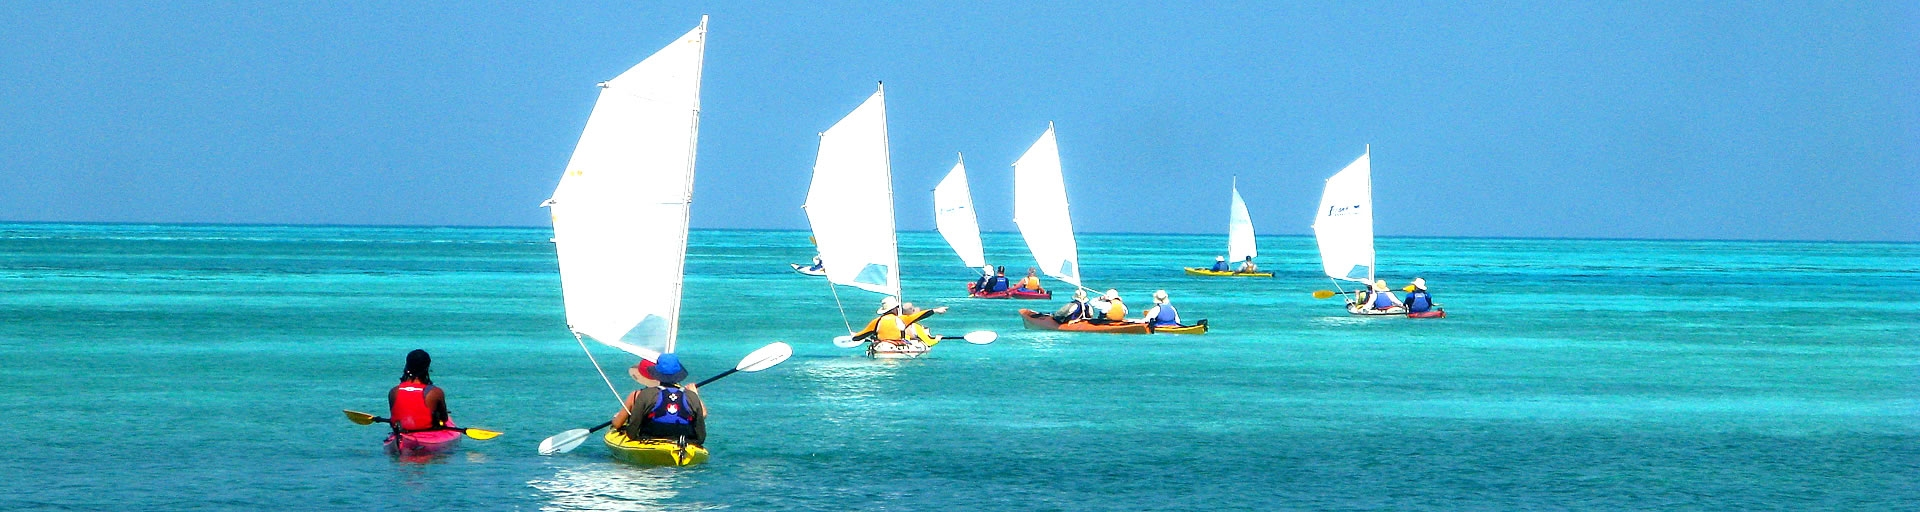 Kayak Sailing Belize Barrier Reef